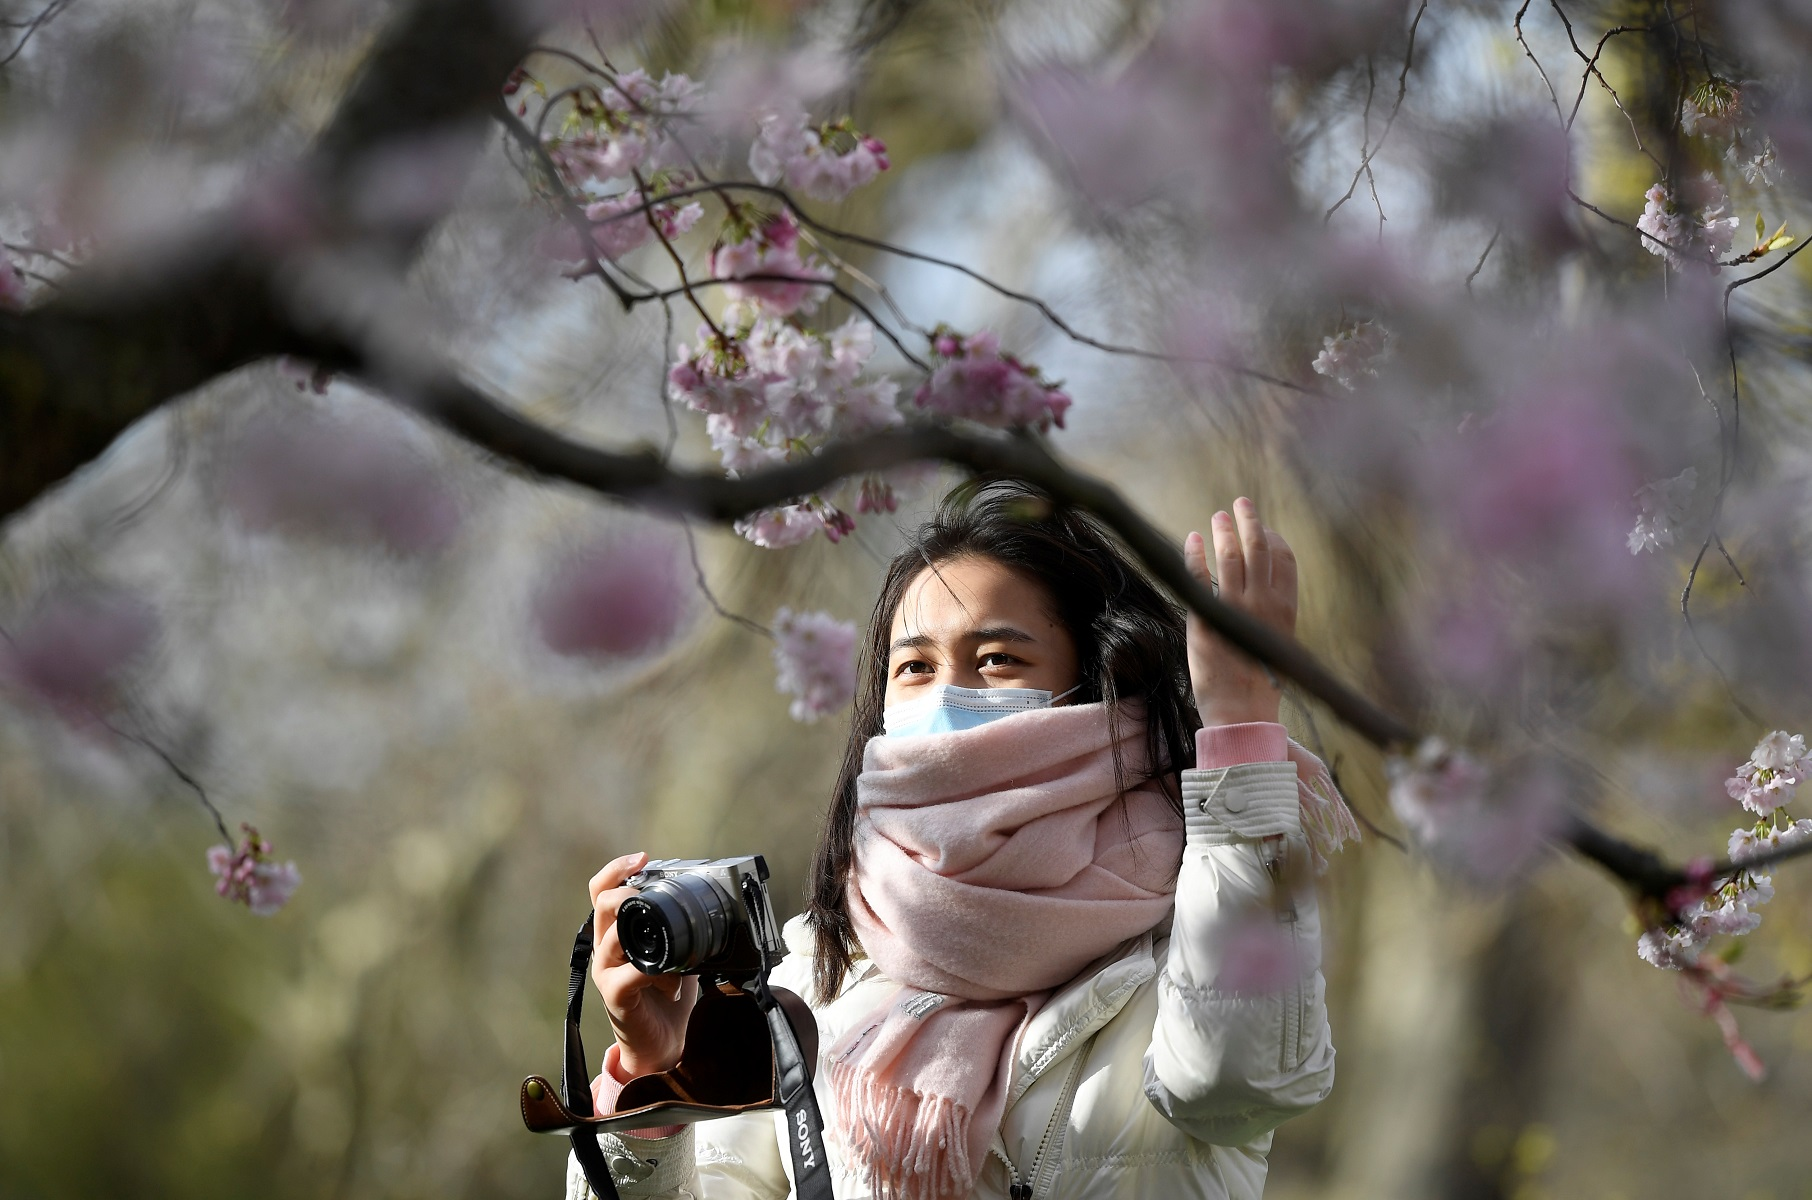 A woman wearing a face protection mask takes photographs of cherry blossom in St James's Park in London, Britain, March 11, 2020. REUTERS/Toby Melville